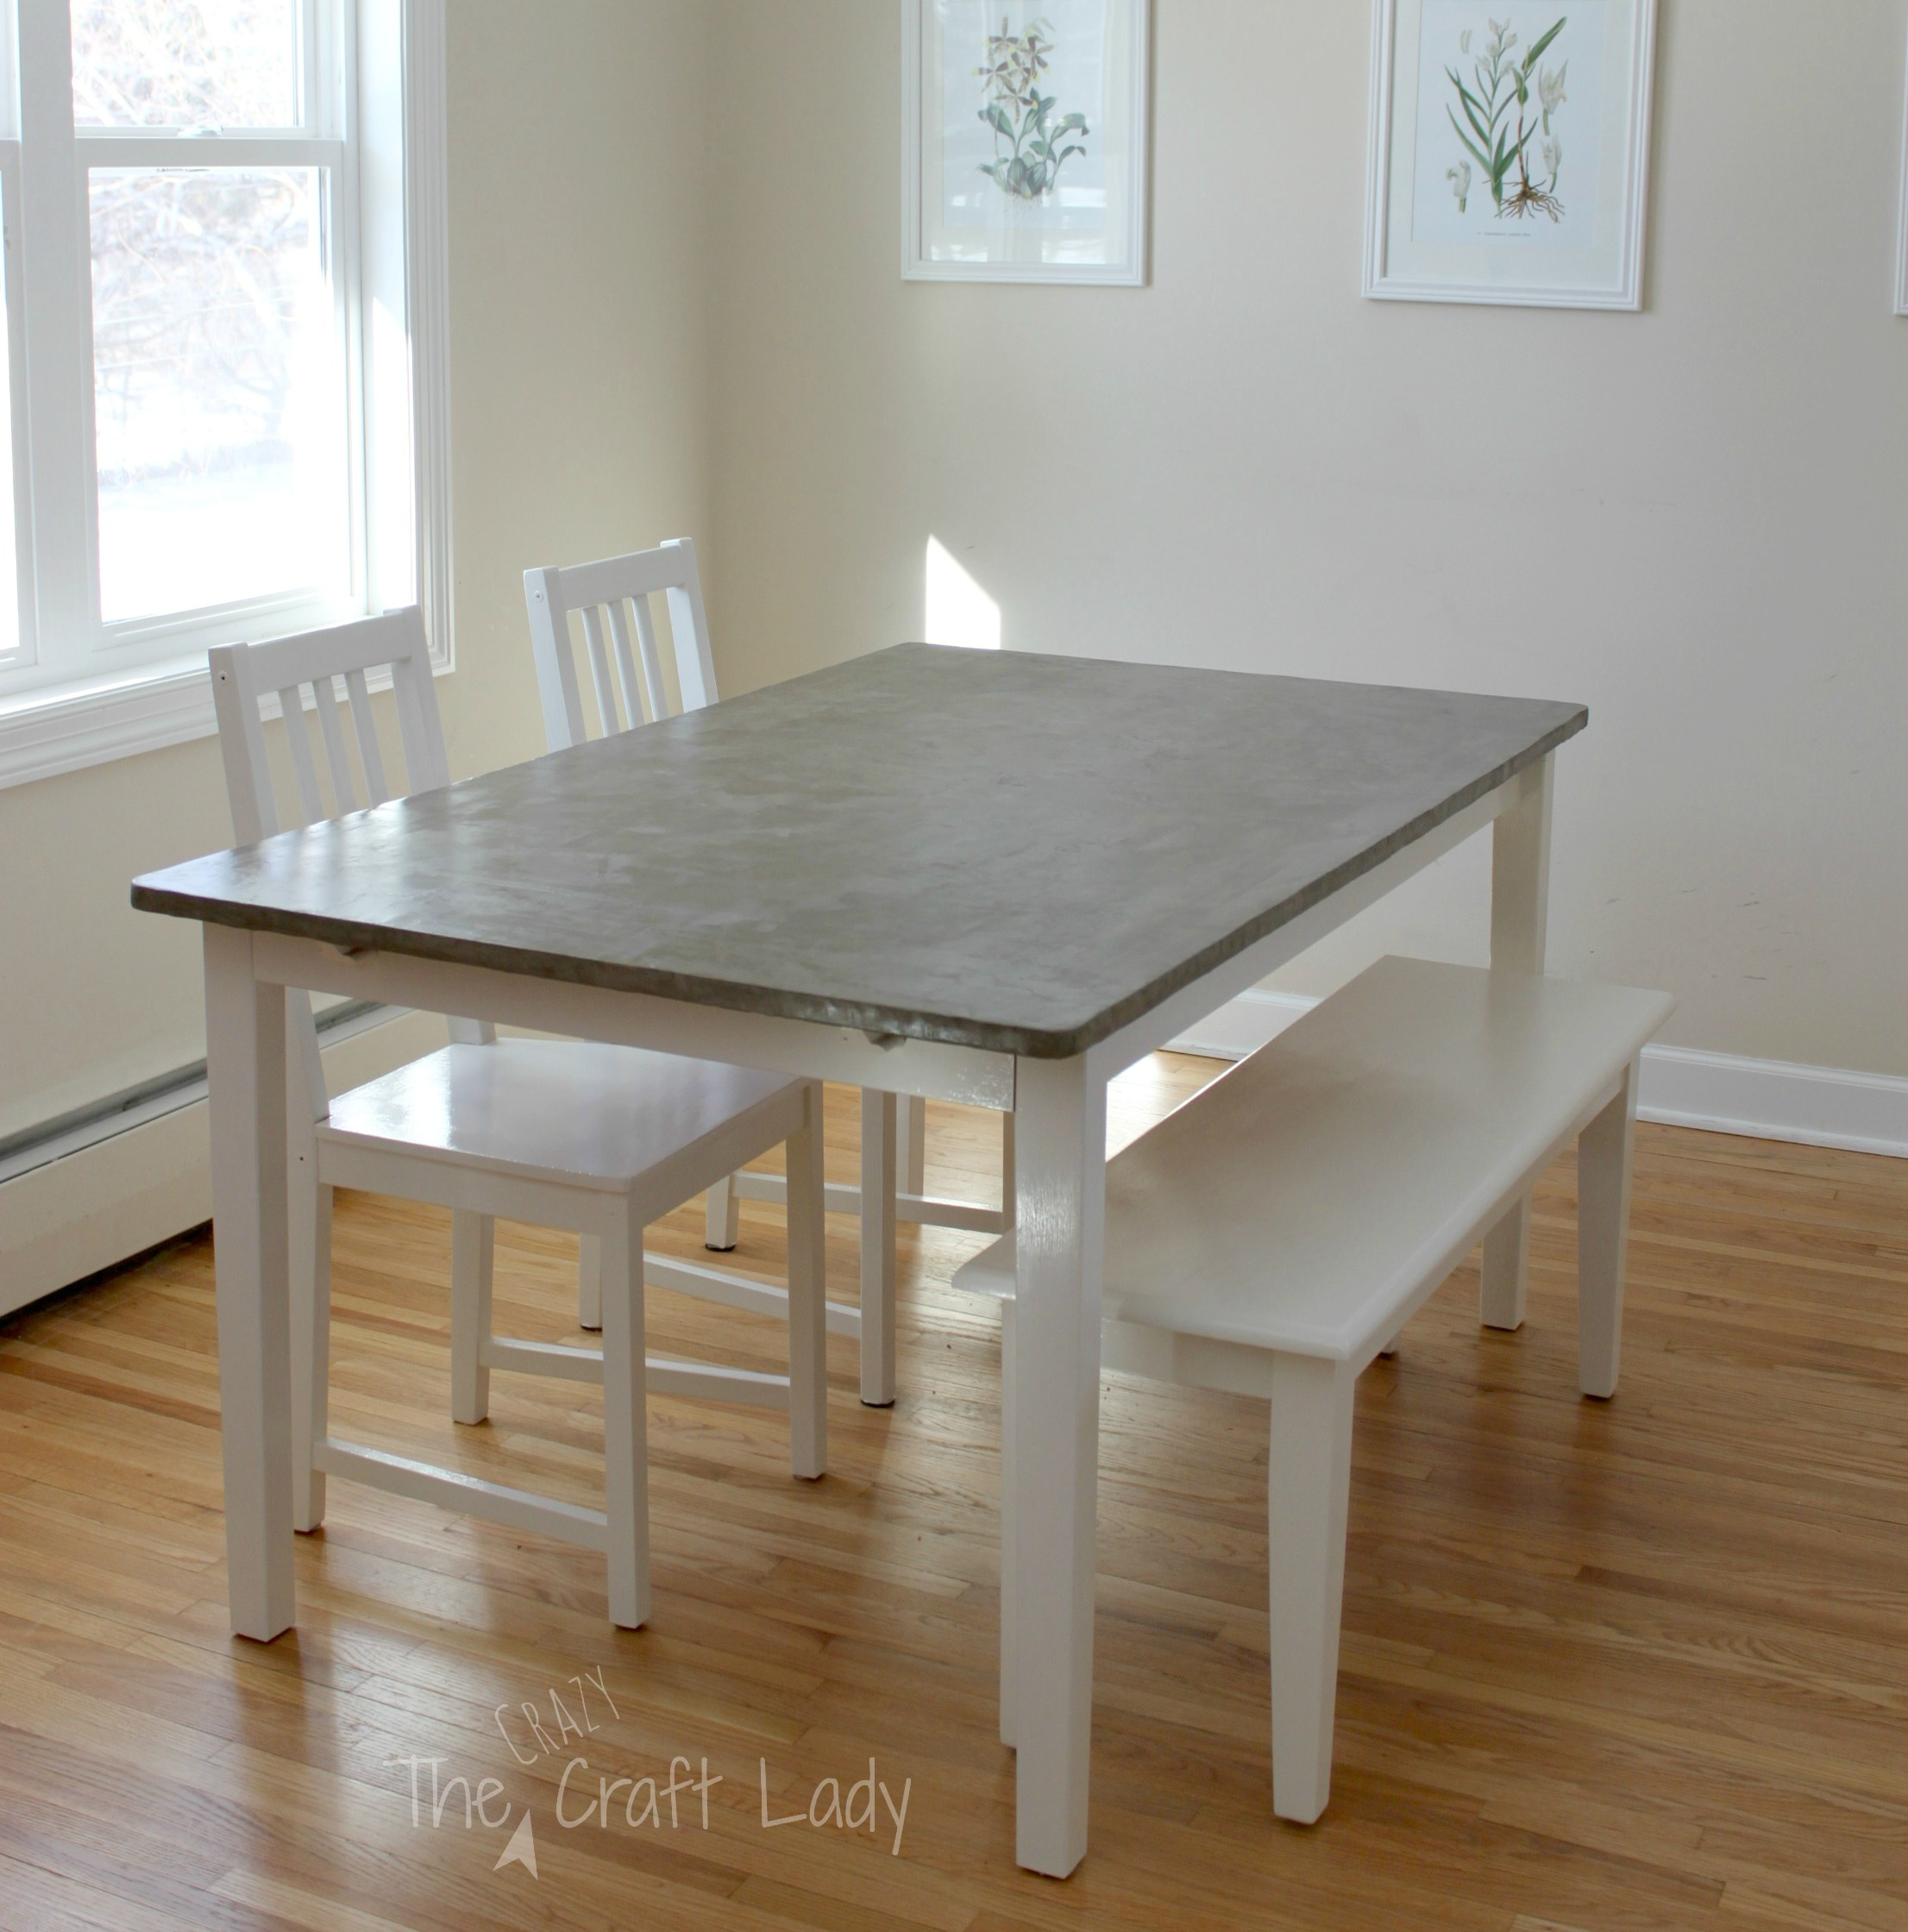 Diy dining table top Photo - 1